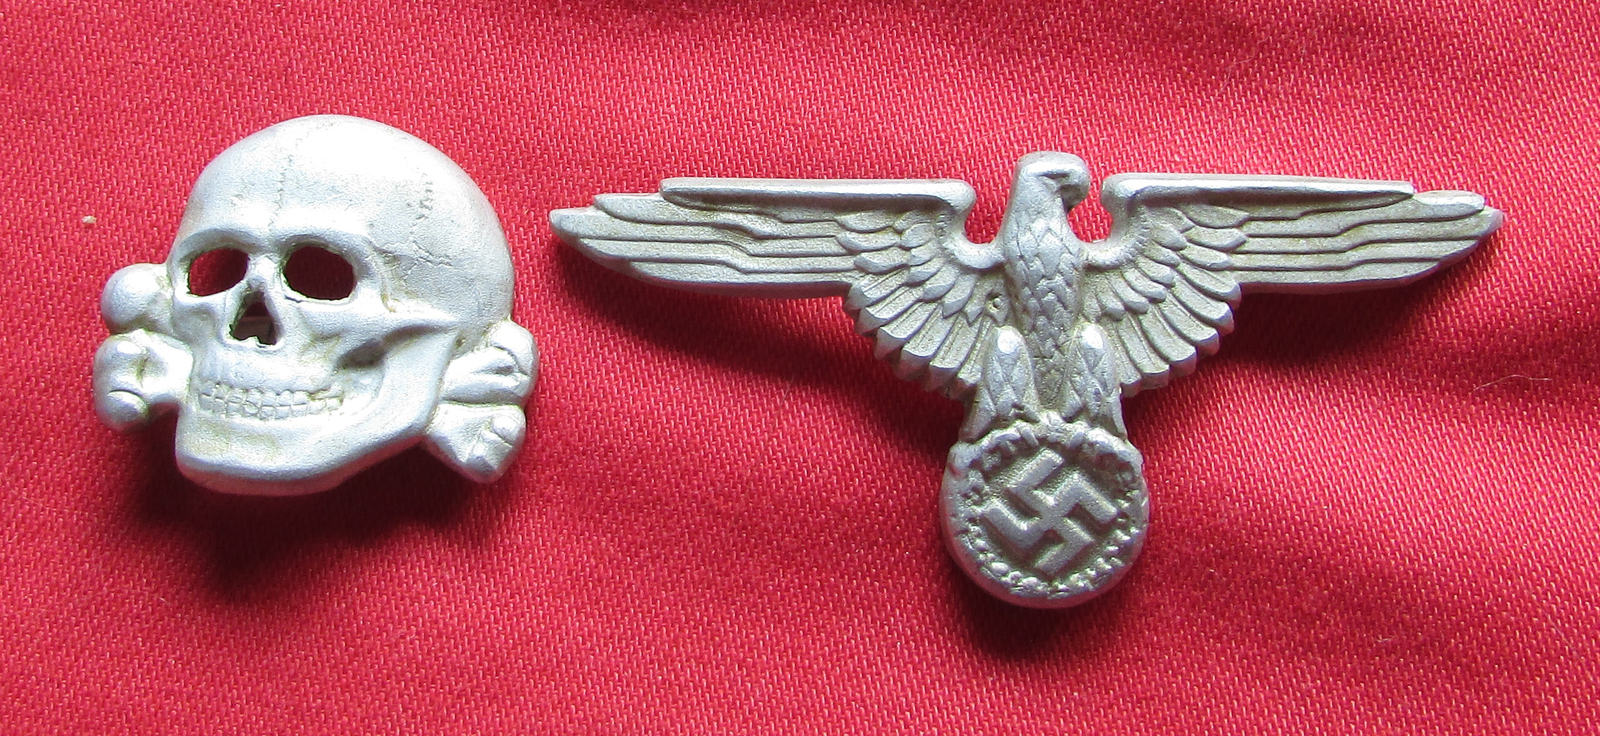 German SS Hat Eagle and Totenkoft (Skull) and 43 similar items